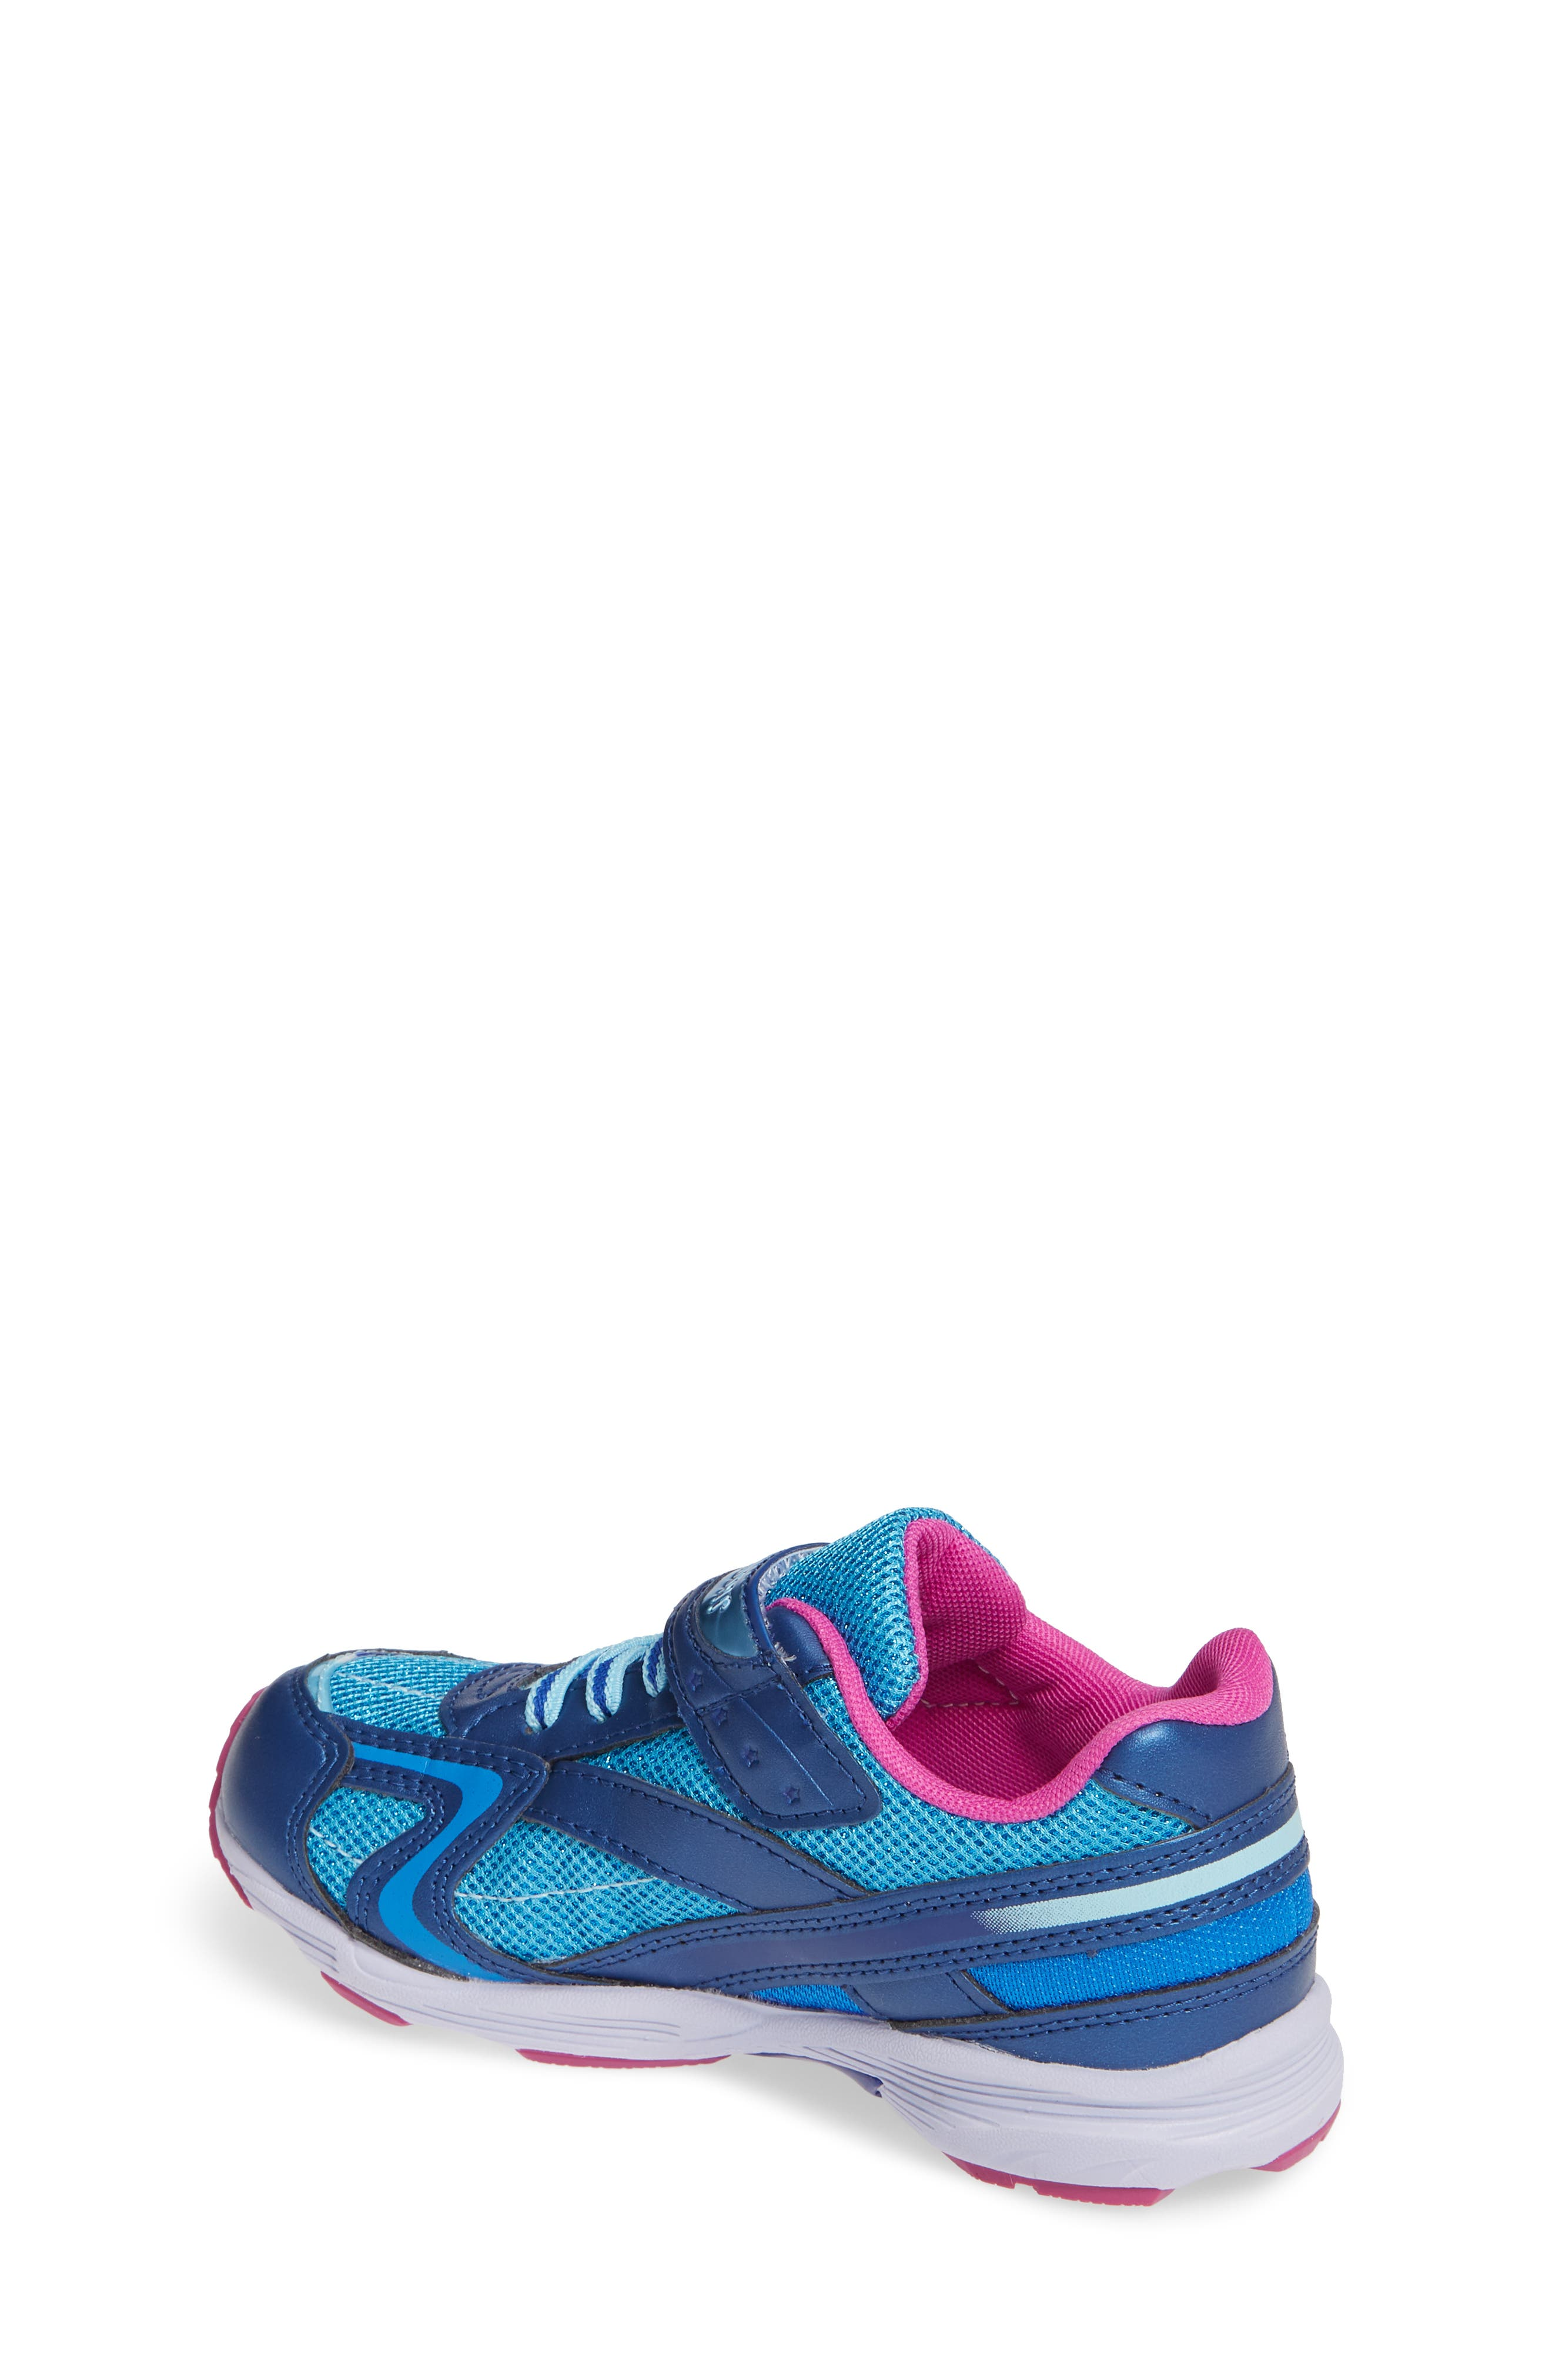 Glitz Washable Sneaker,                             Alternate thumbnail 2, color,                             NAVY/ BERRY